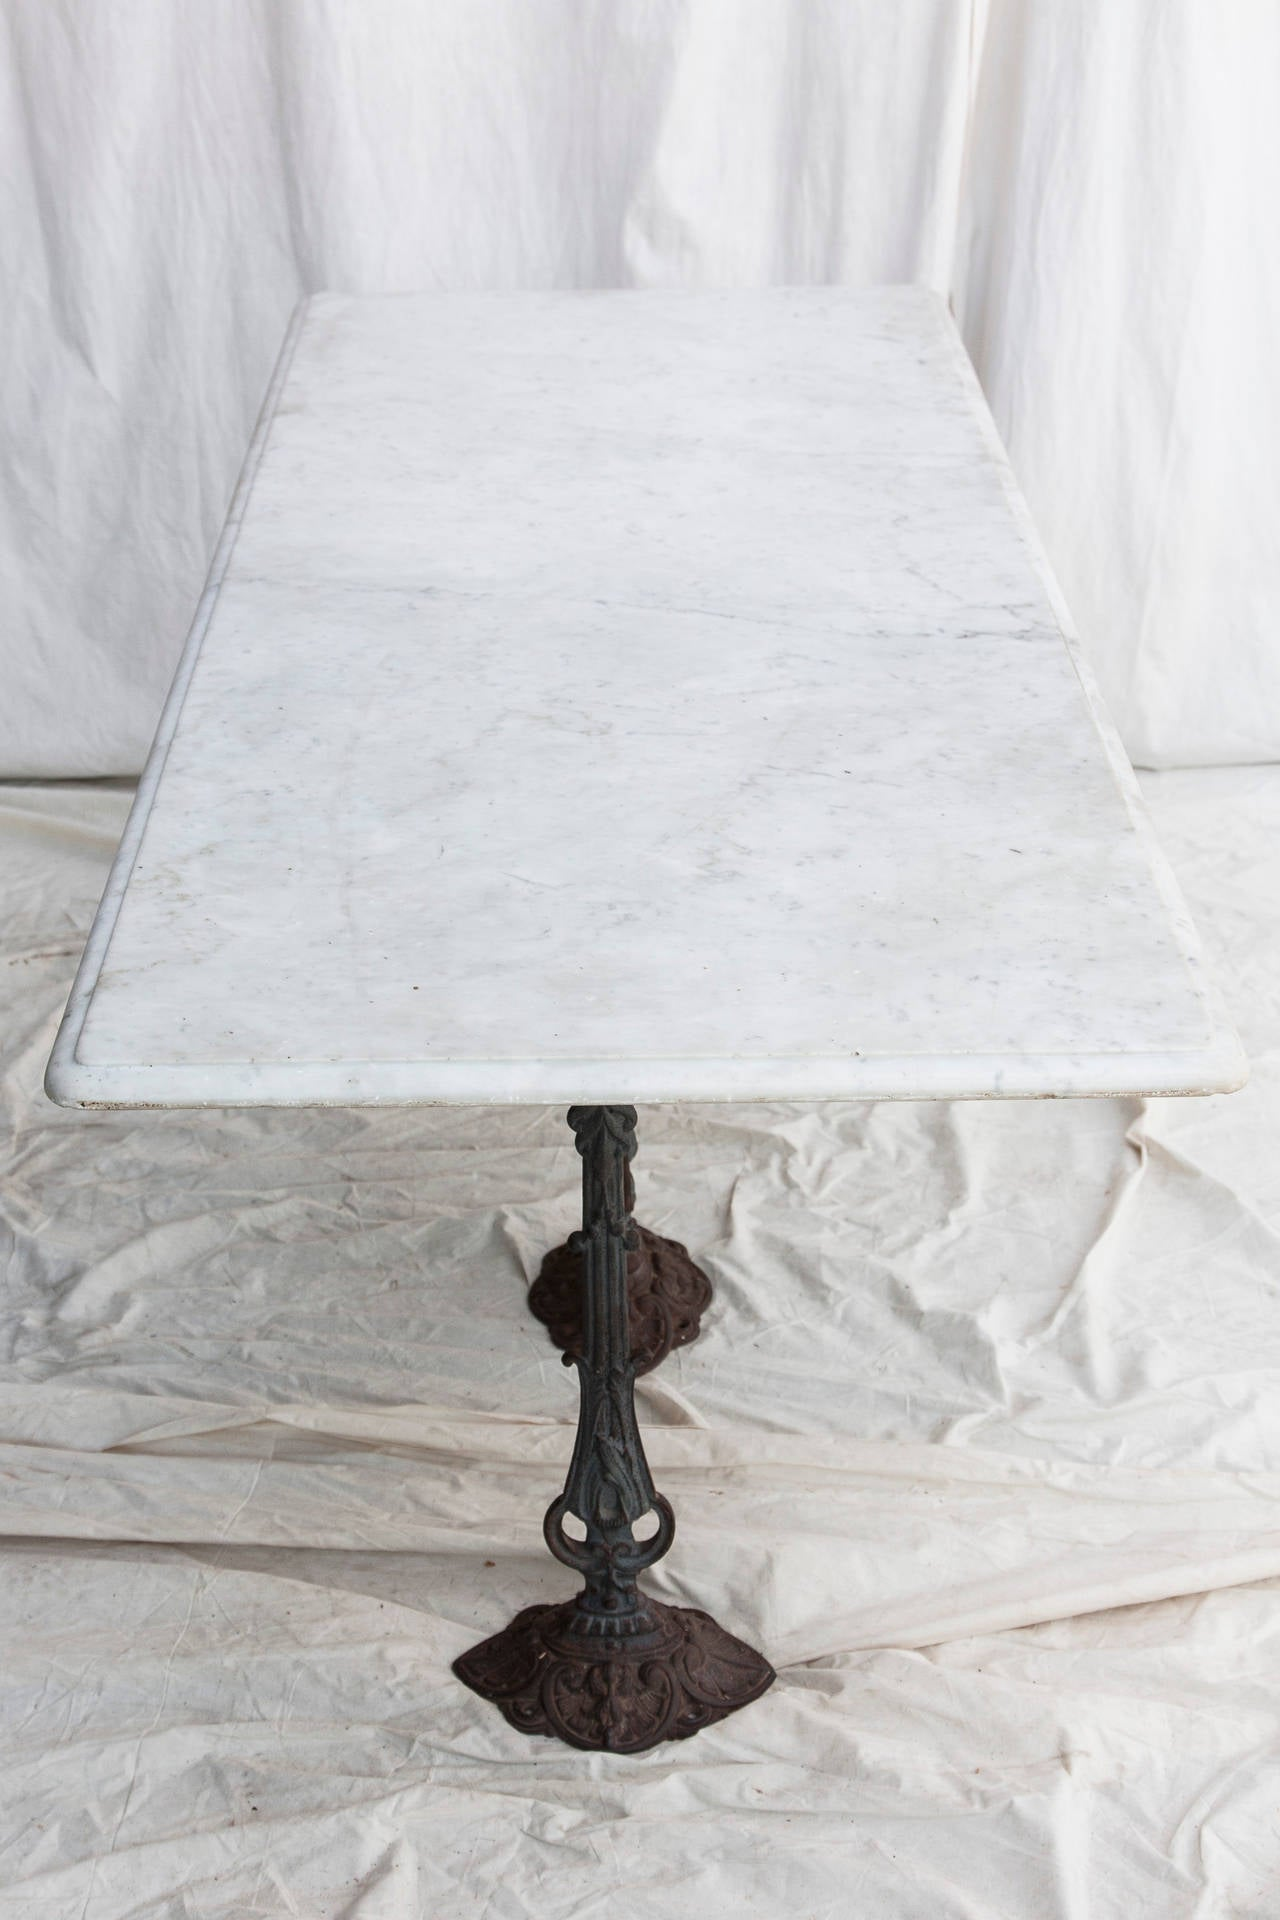 Carrara Marble Top Paris Bistro Table Or Console With Three Cast